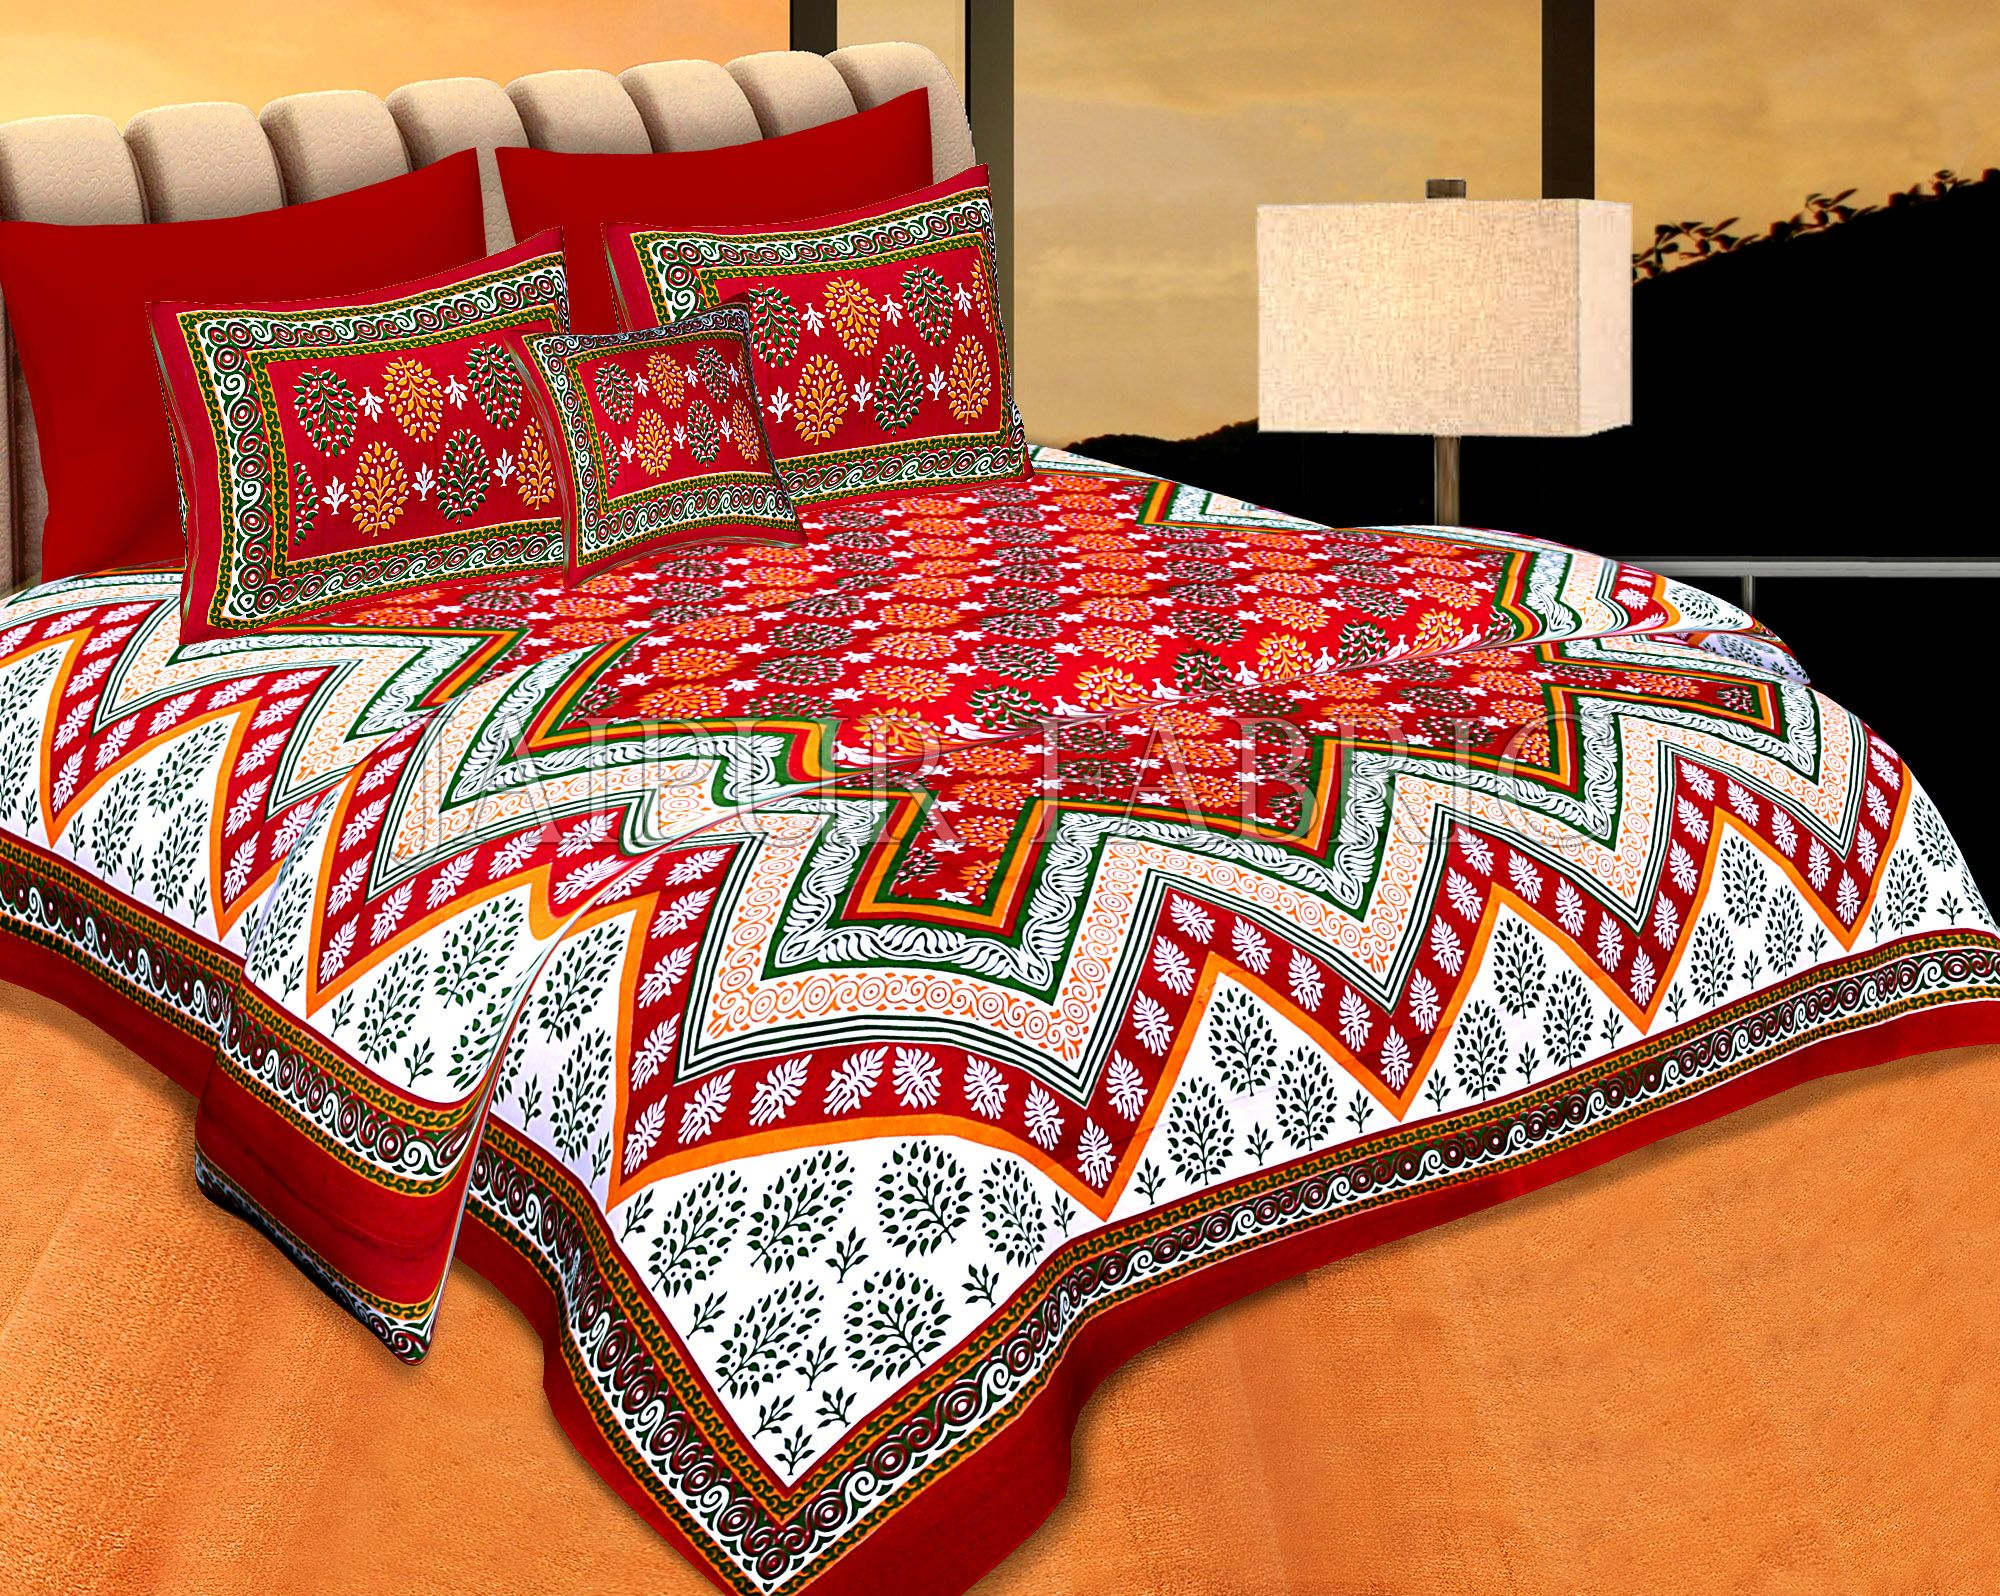 Maroon Border Red Base Zigzag Pattern Cotton Double Bed Sheet